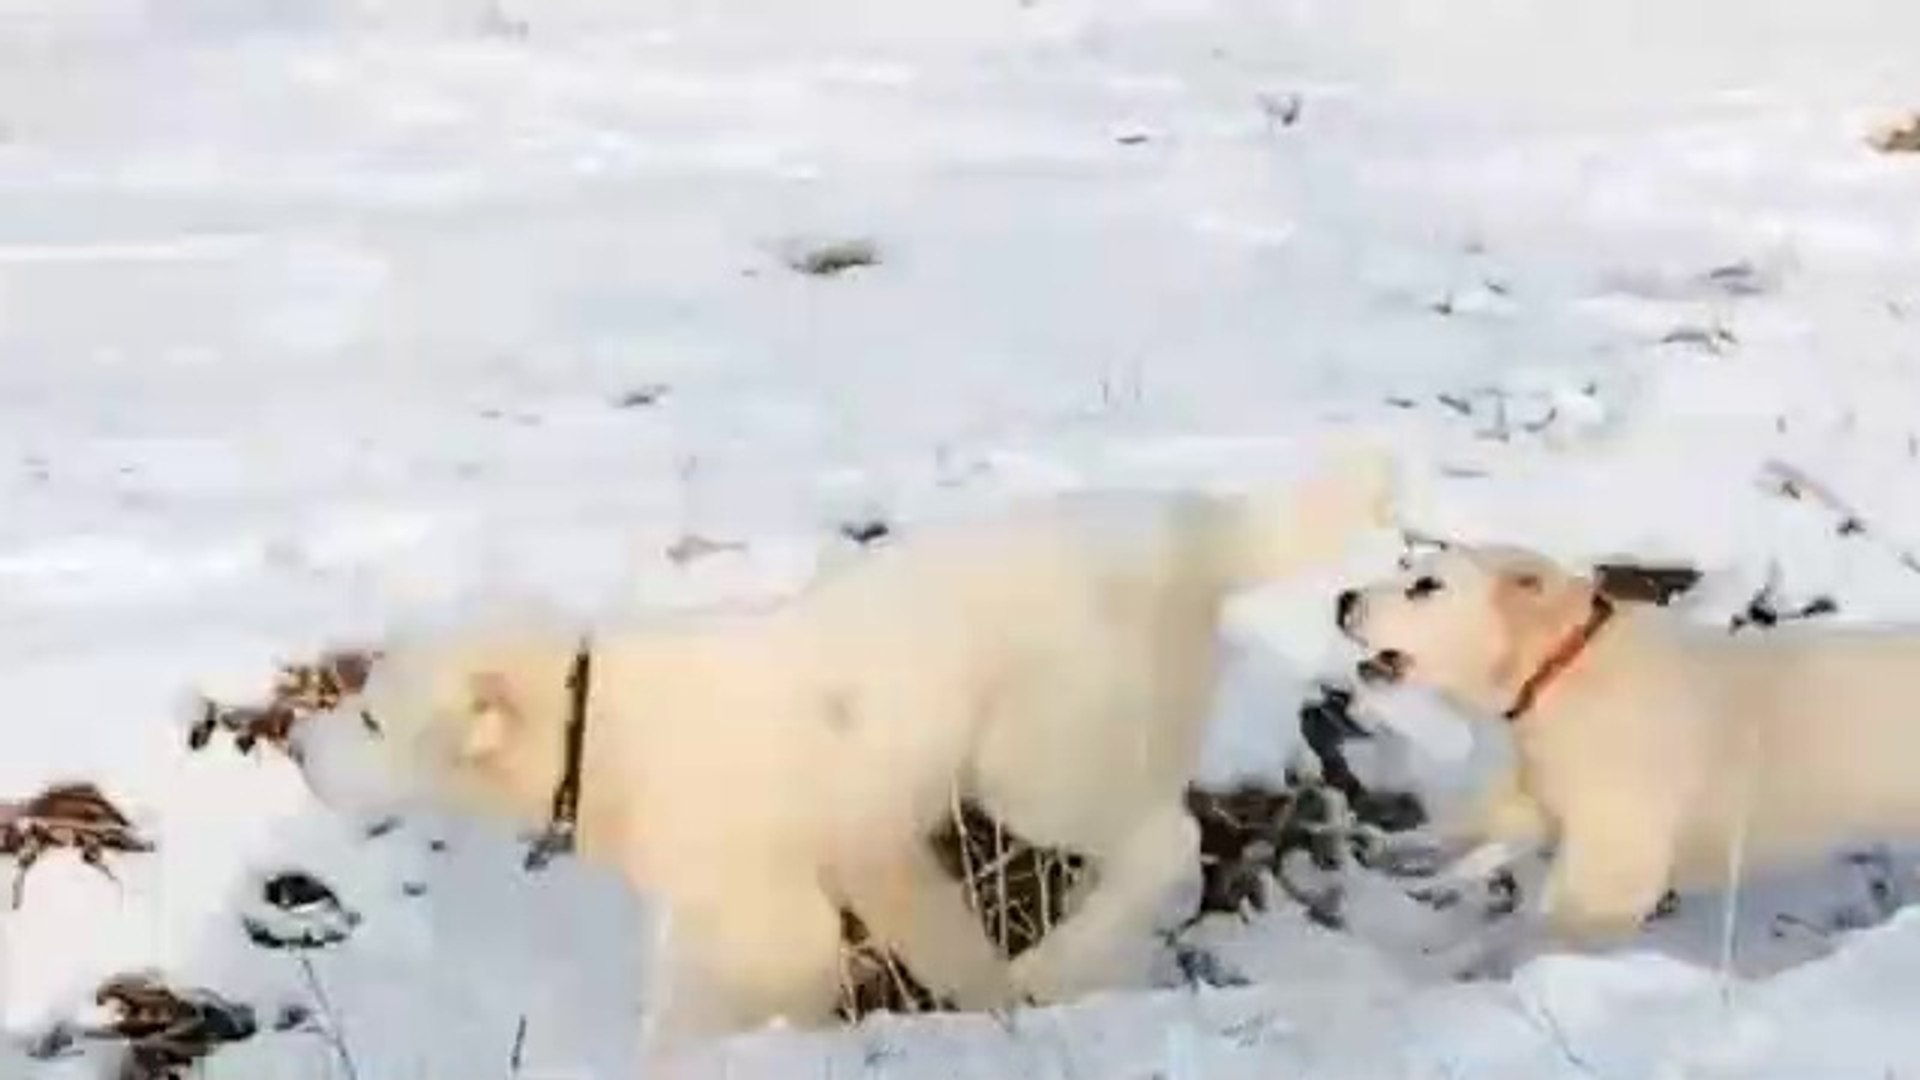 TURKMEN ALABAY COBAN KOPEKLERiNiN KAR KEYFi - ALABAi SHEPHERD DOGS at PLAY SNOW